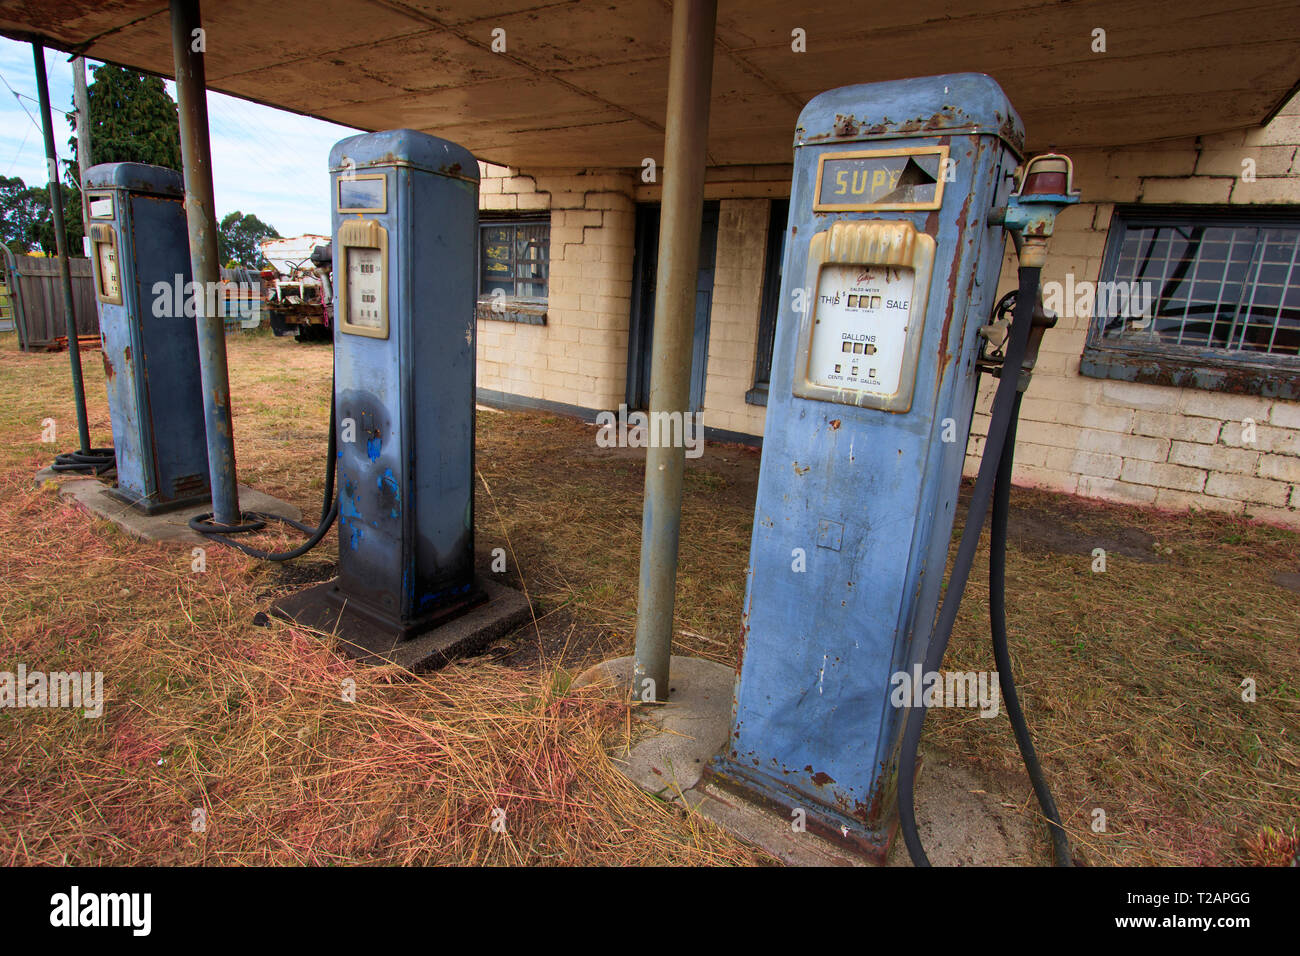 A disused service station with retro petrol pump bowser in